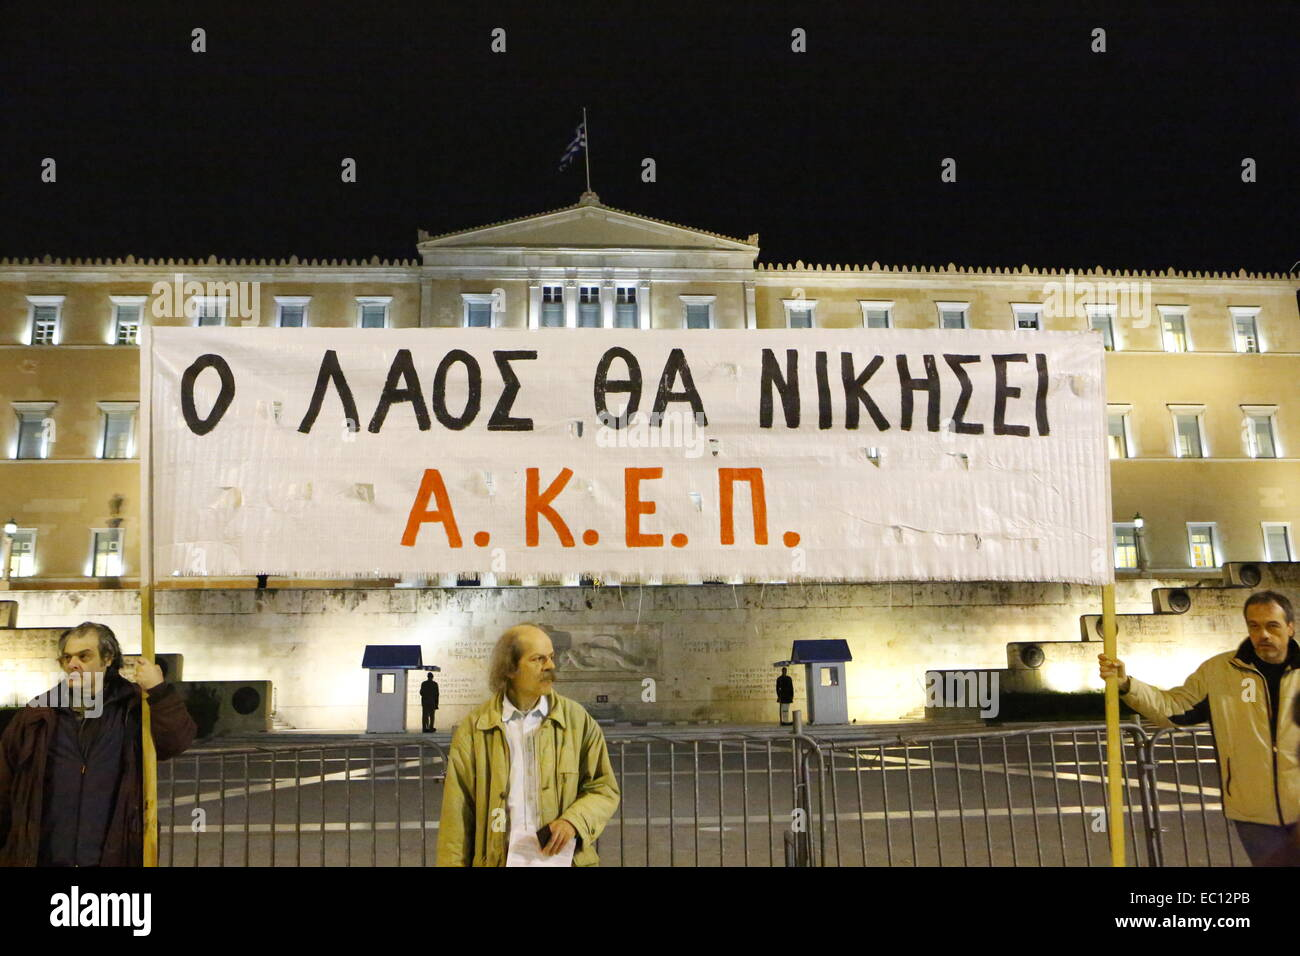 Athens, Greece. 7th Dec, 2014. Protesters from the AKEP (Autonomous Movement Workers Politics) hold a banner that Stock Photo